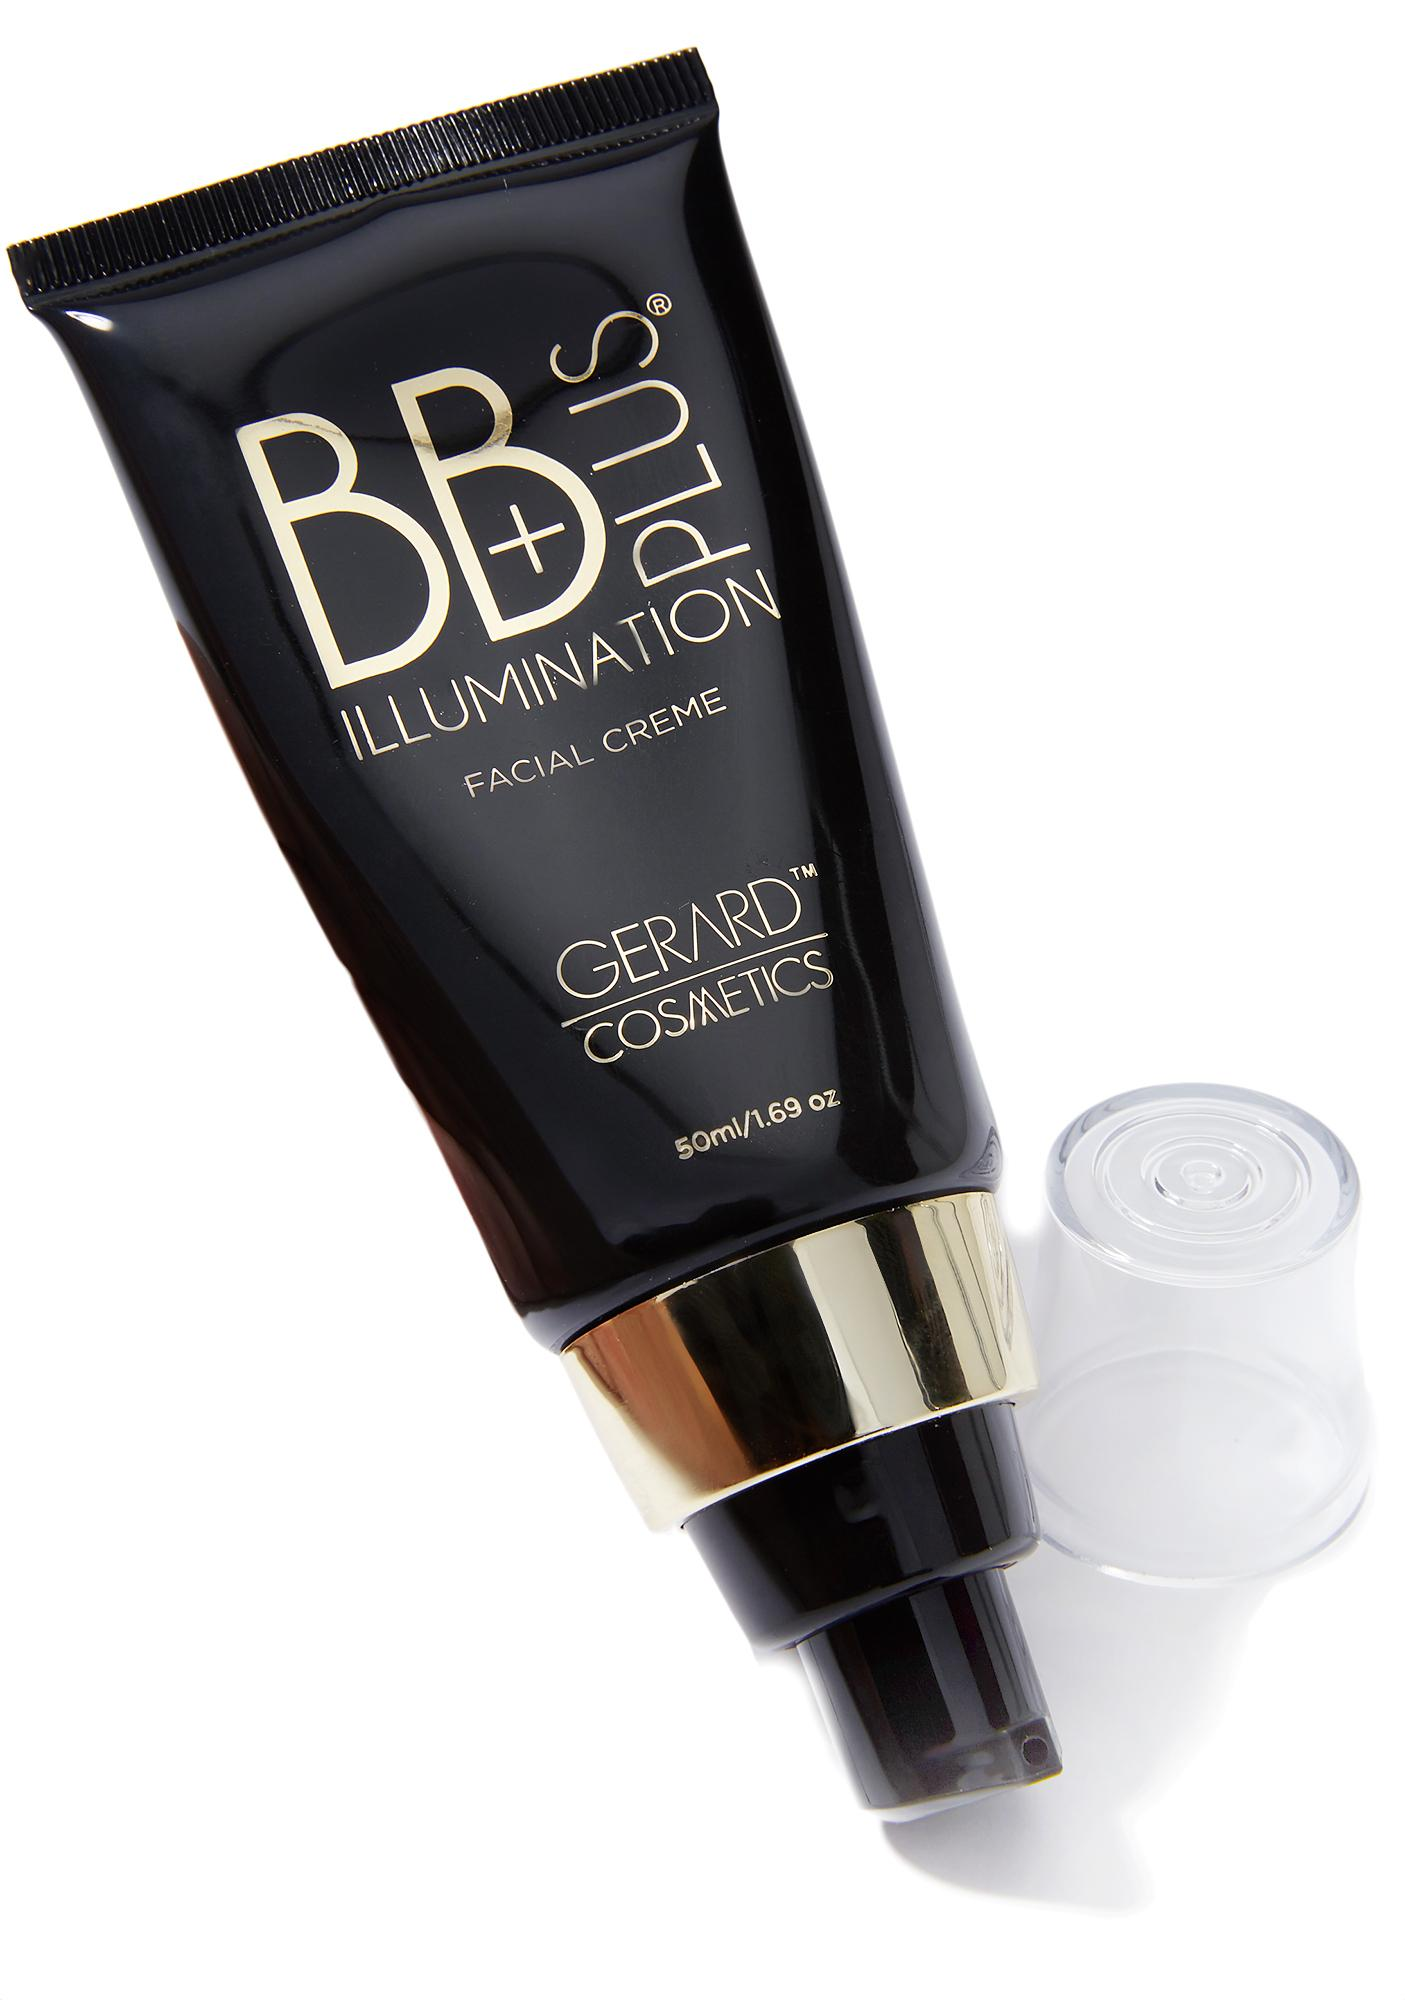 Gerard Cosmetics BB Plus Illumination Cream